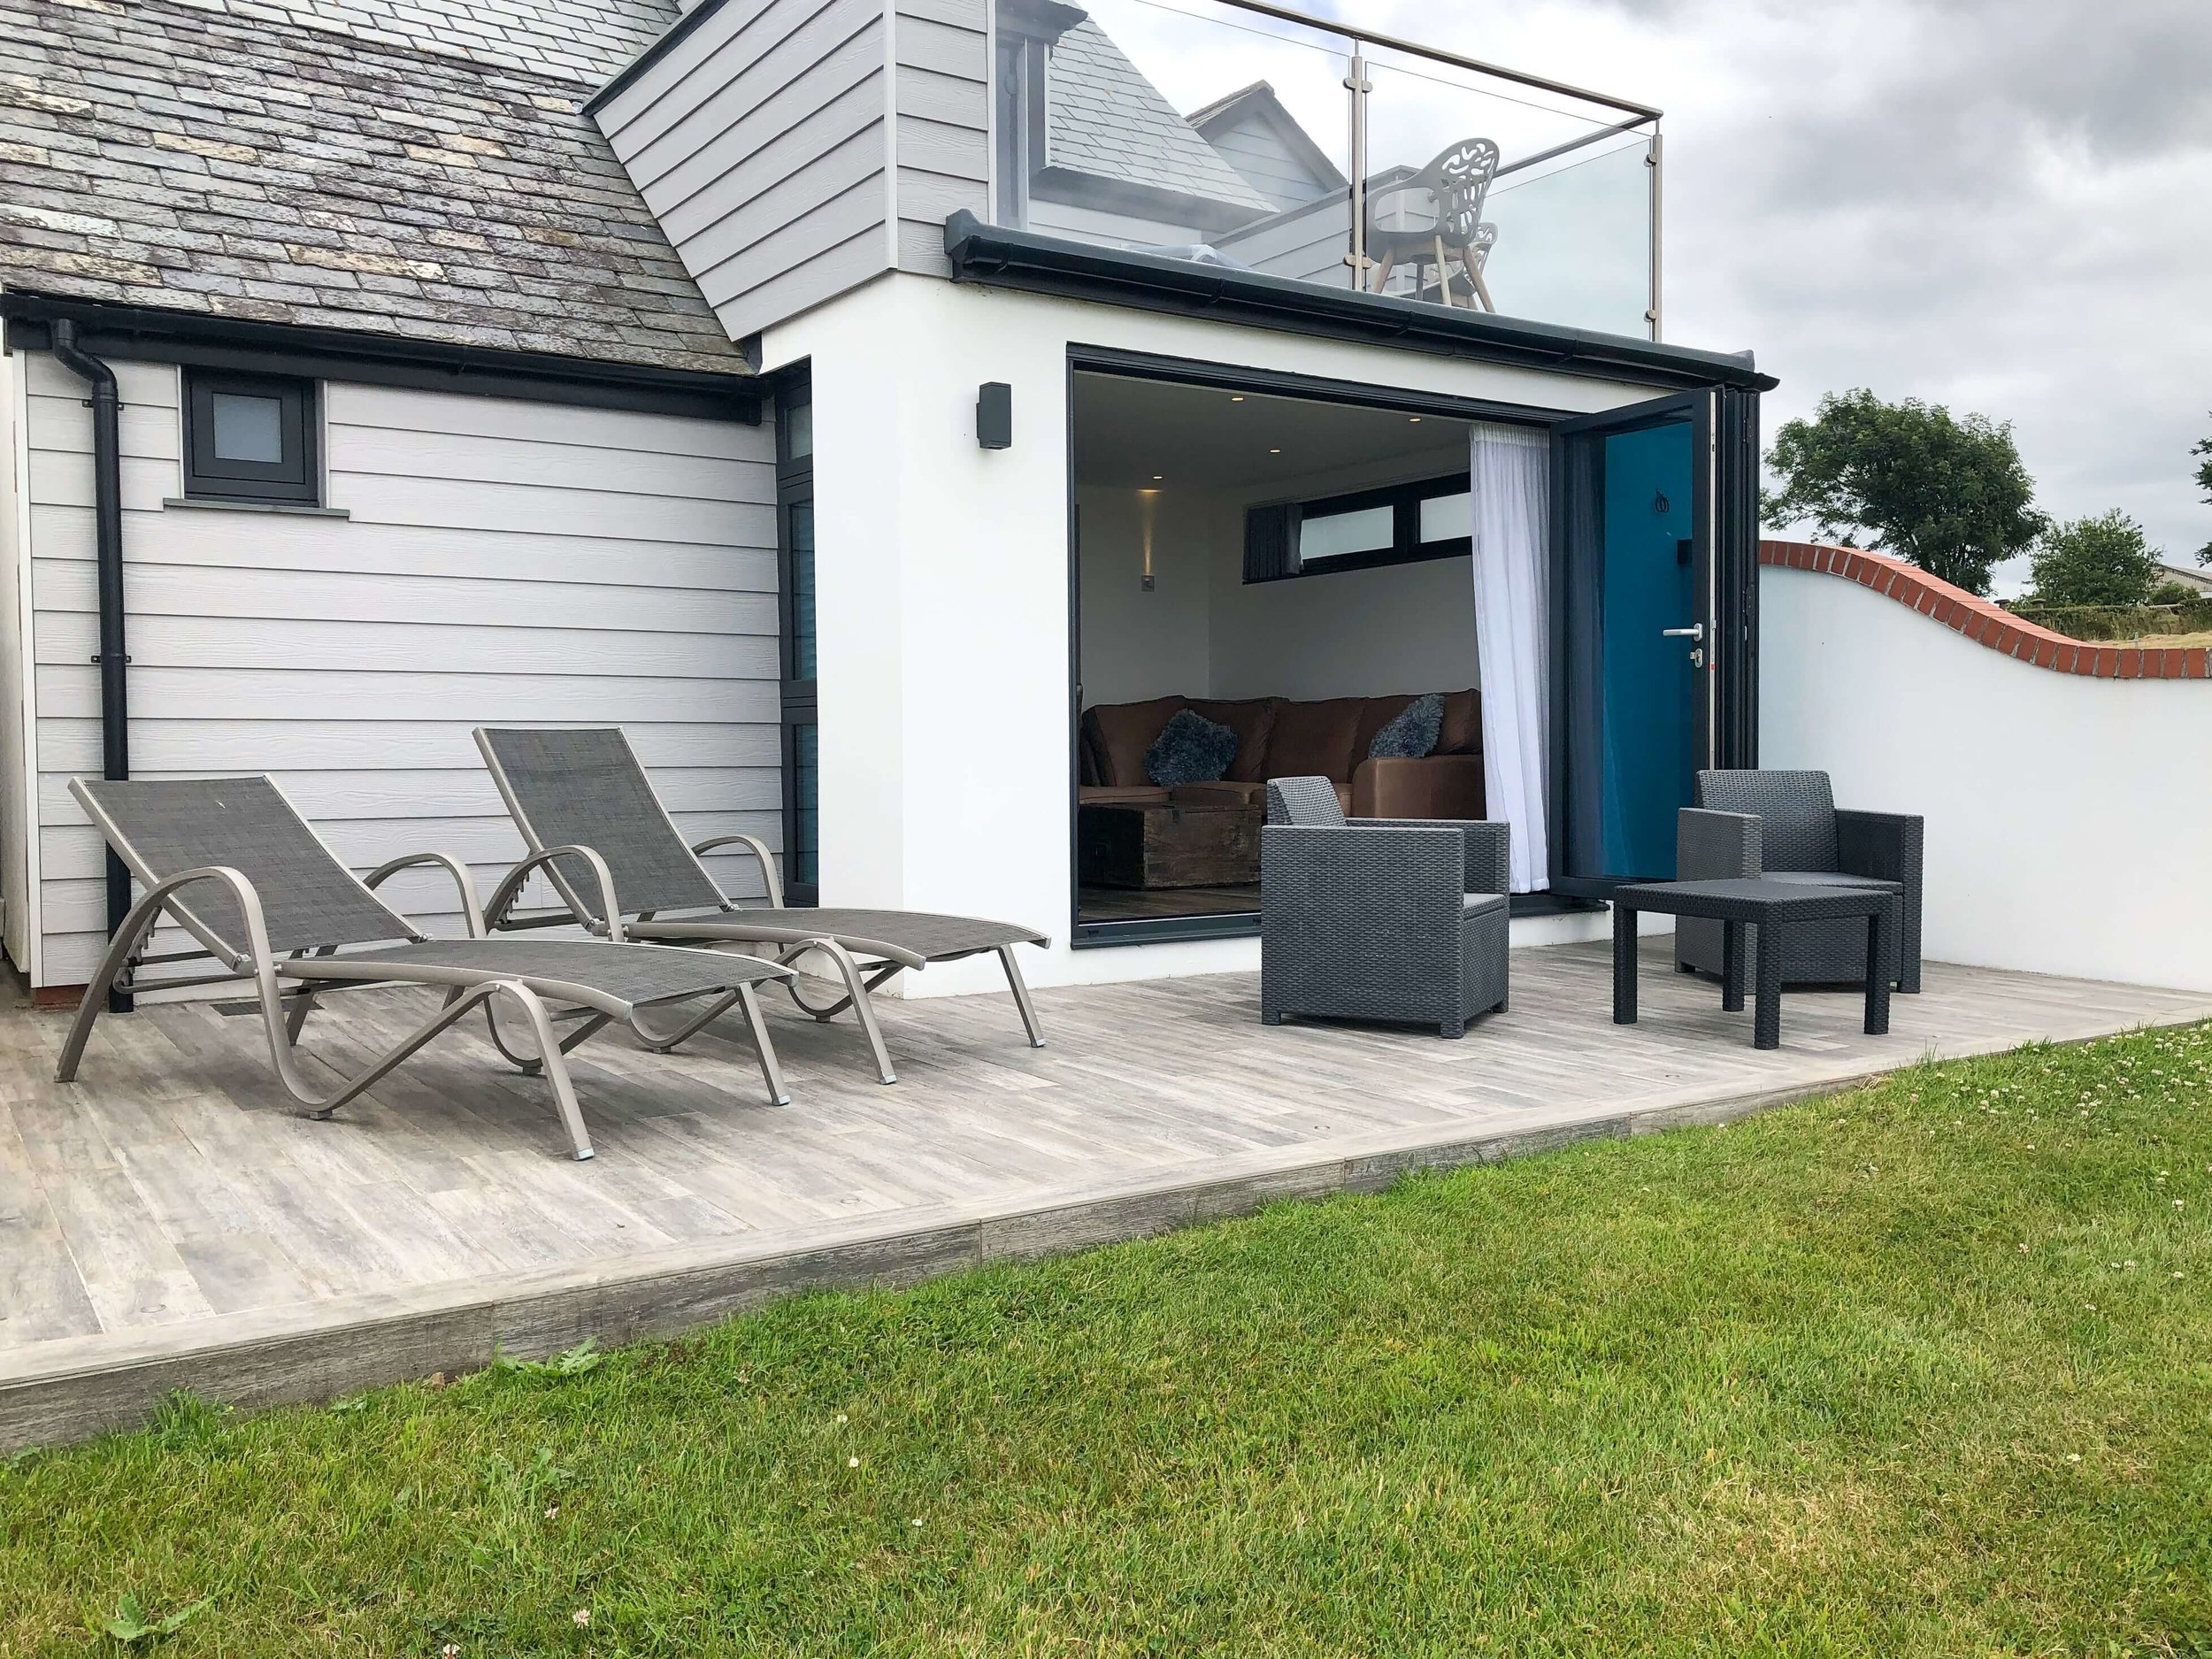 Patio/Deck area with sun loungers and seating for two persons